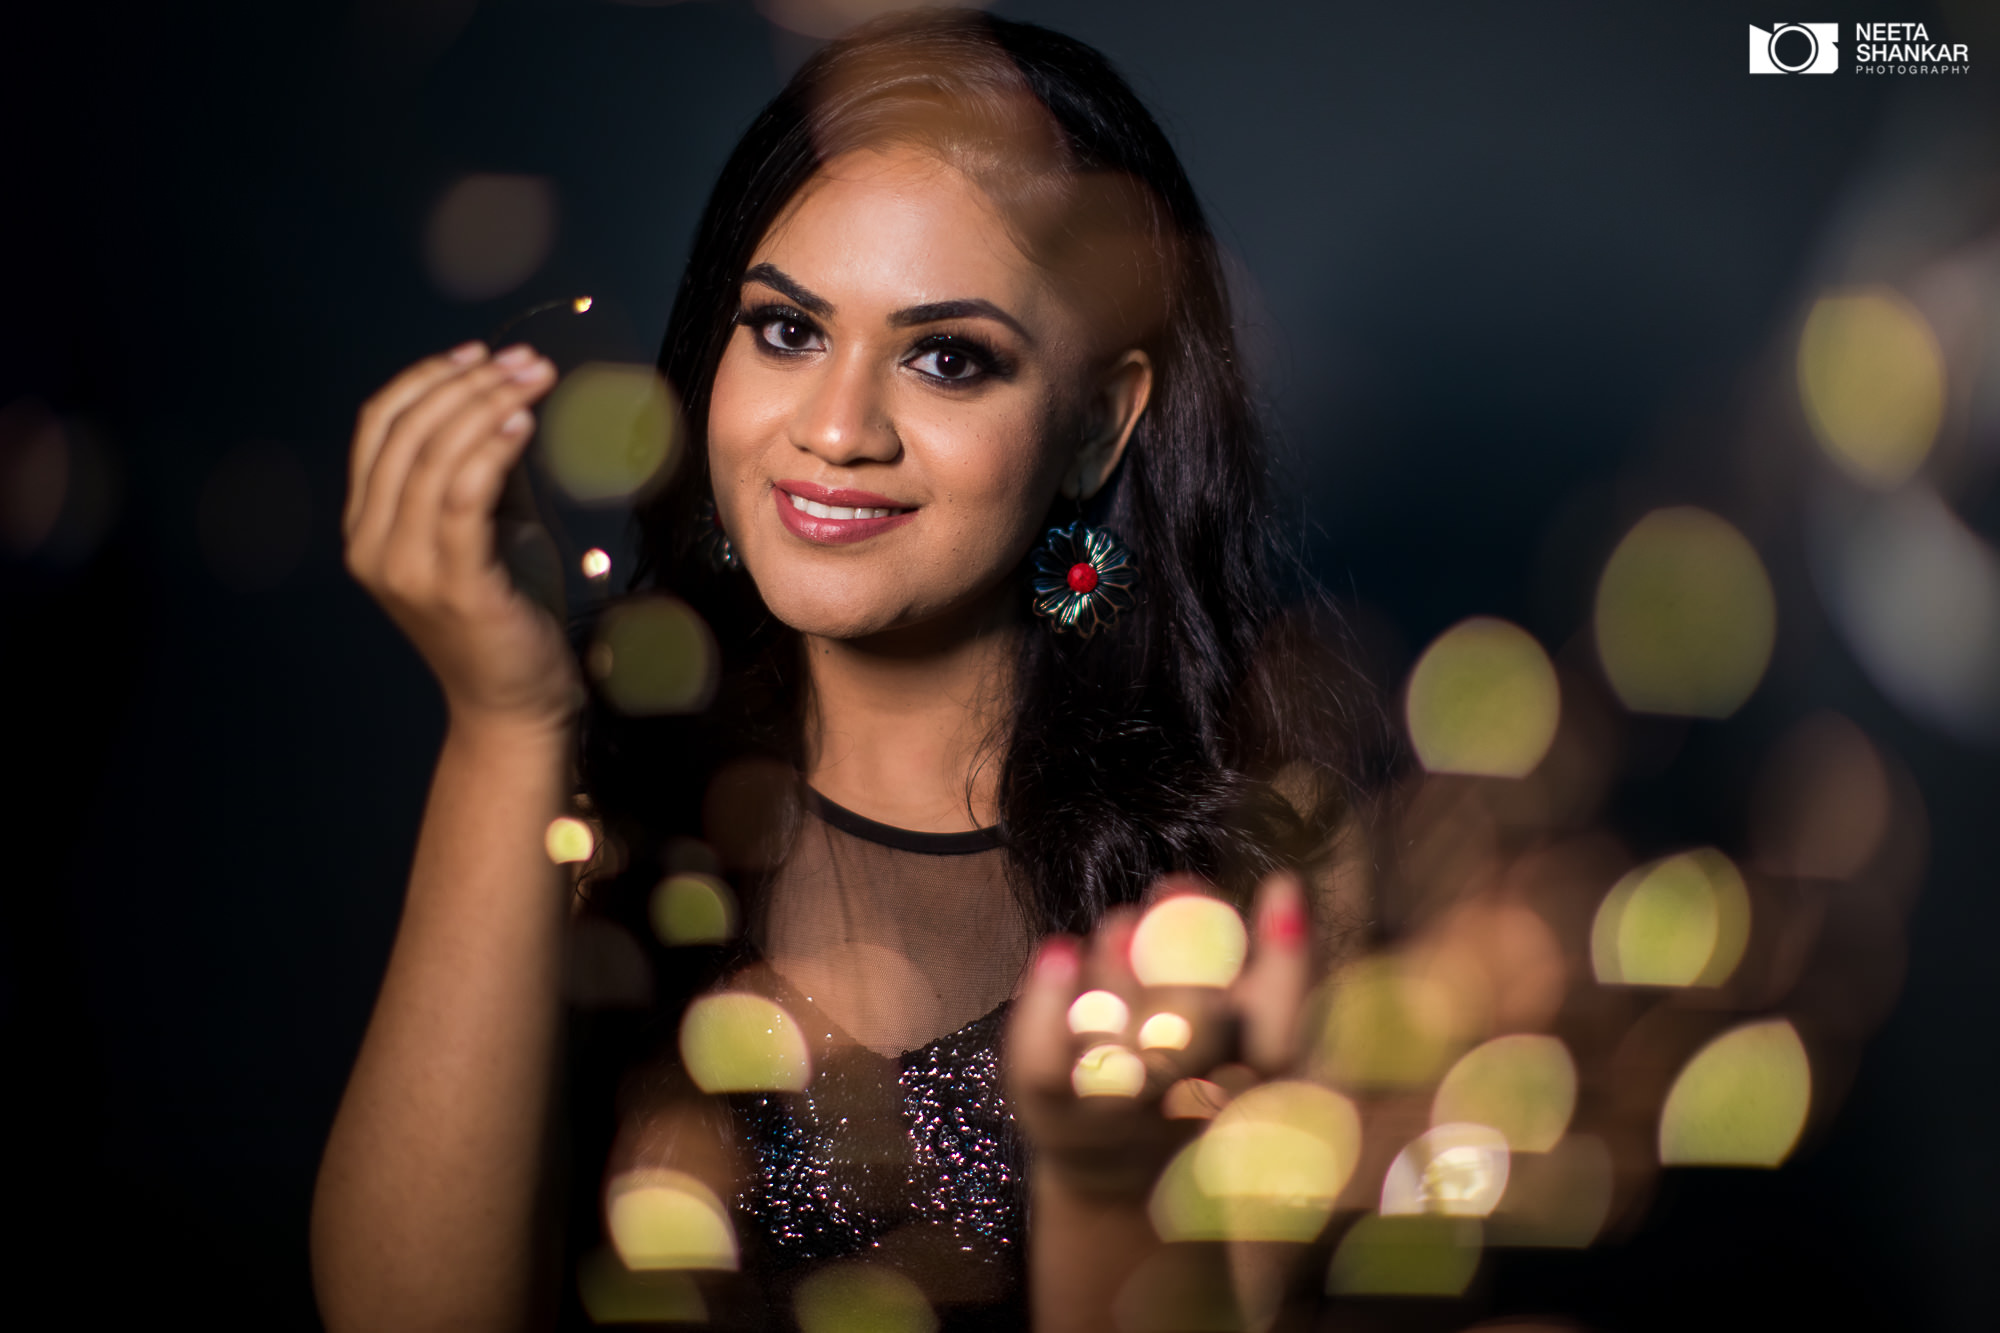 Neeta-Shankar-Photography-Review-First-Impressions-Godox-LC500-LED-Light-Stick-Icelight